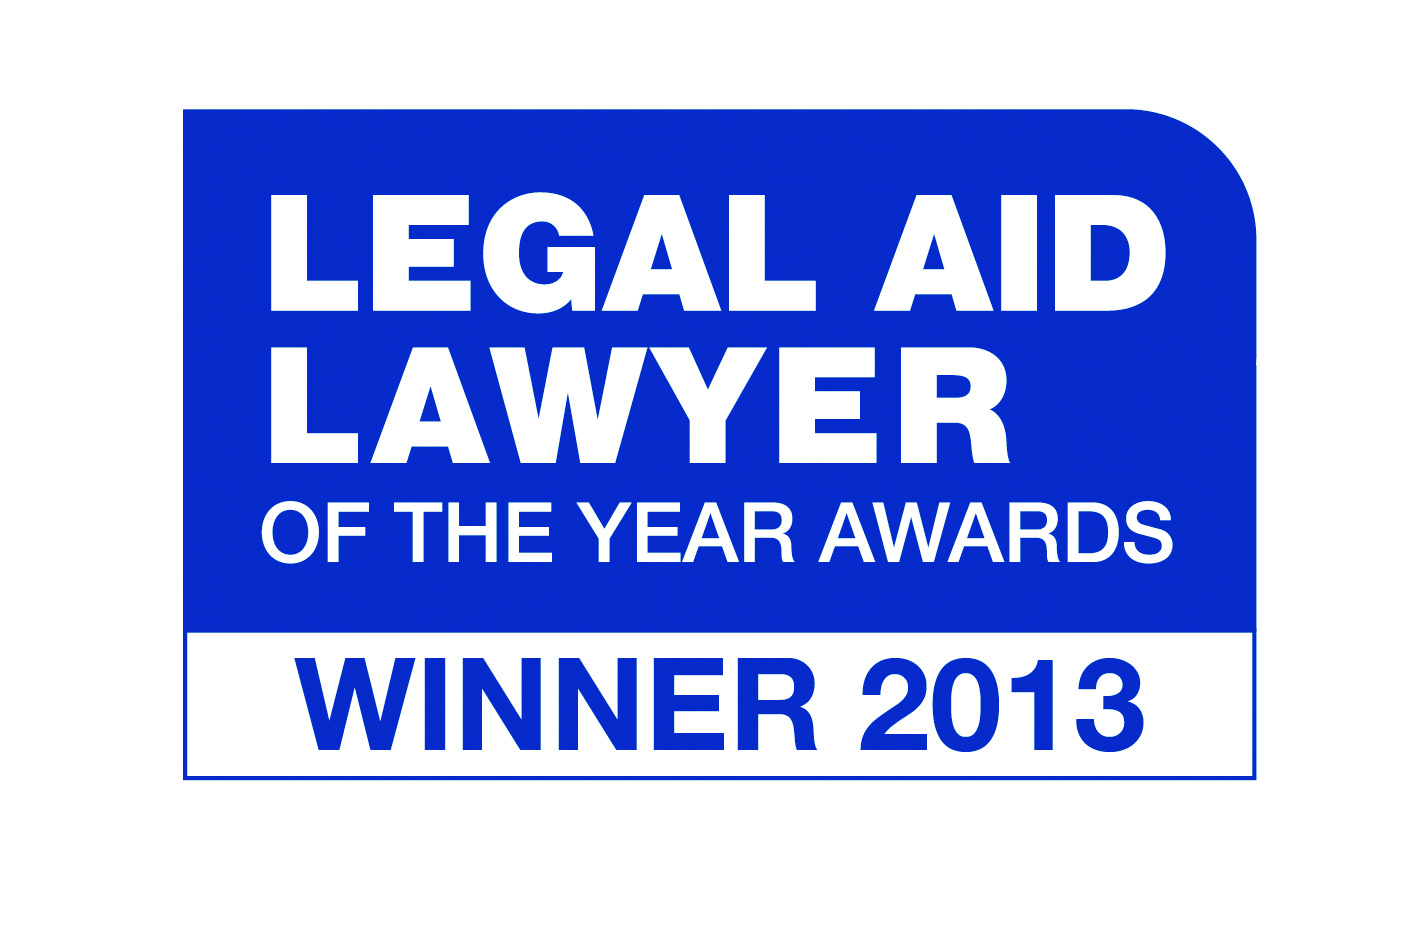 Hilton von Herbert wins Legal Aid Lawyer of the Year award!